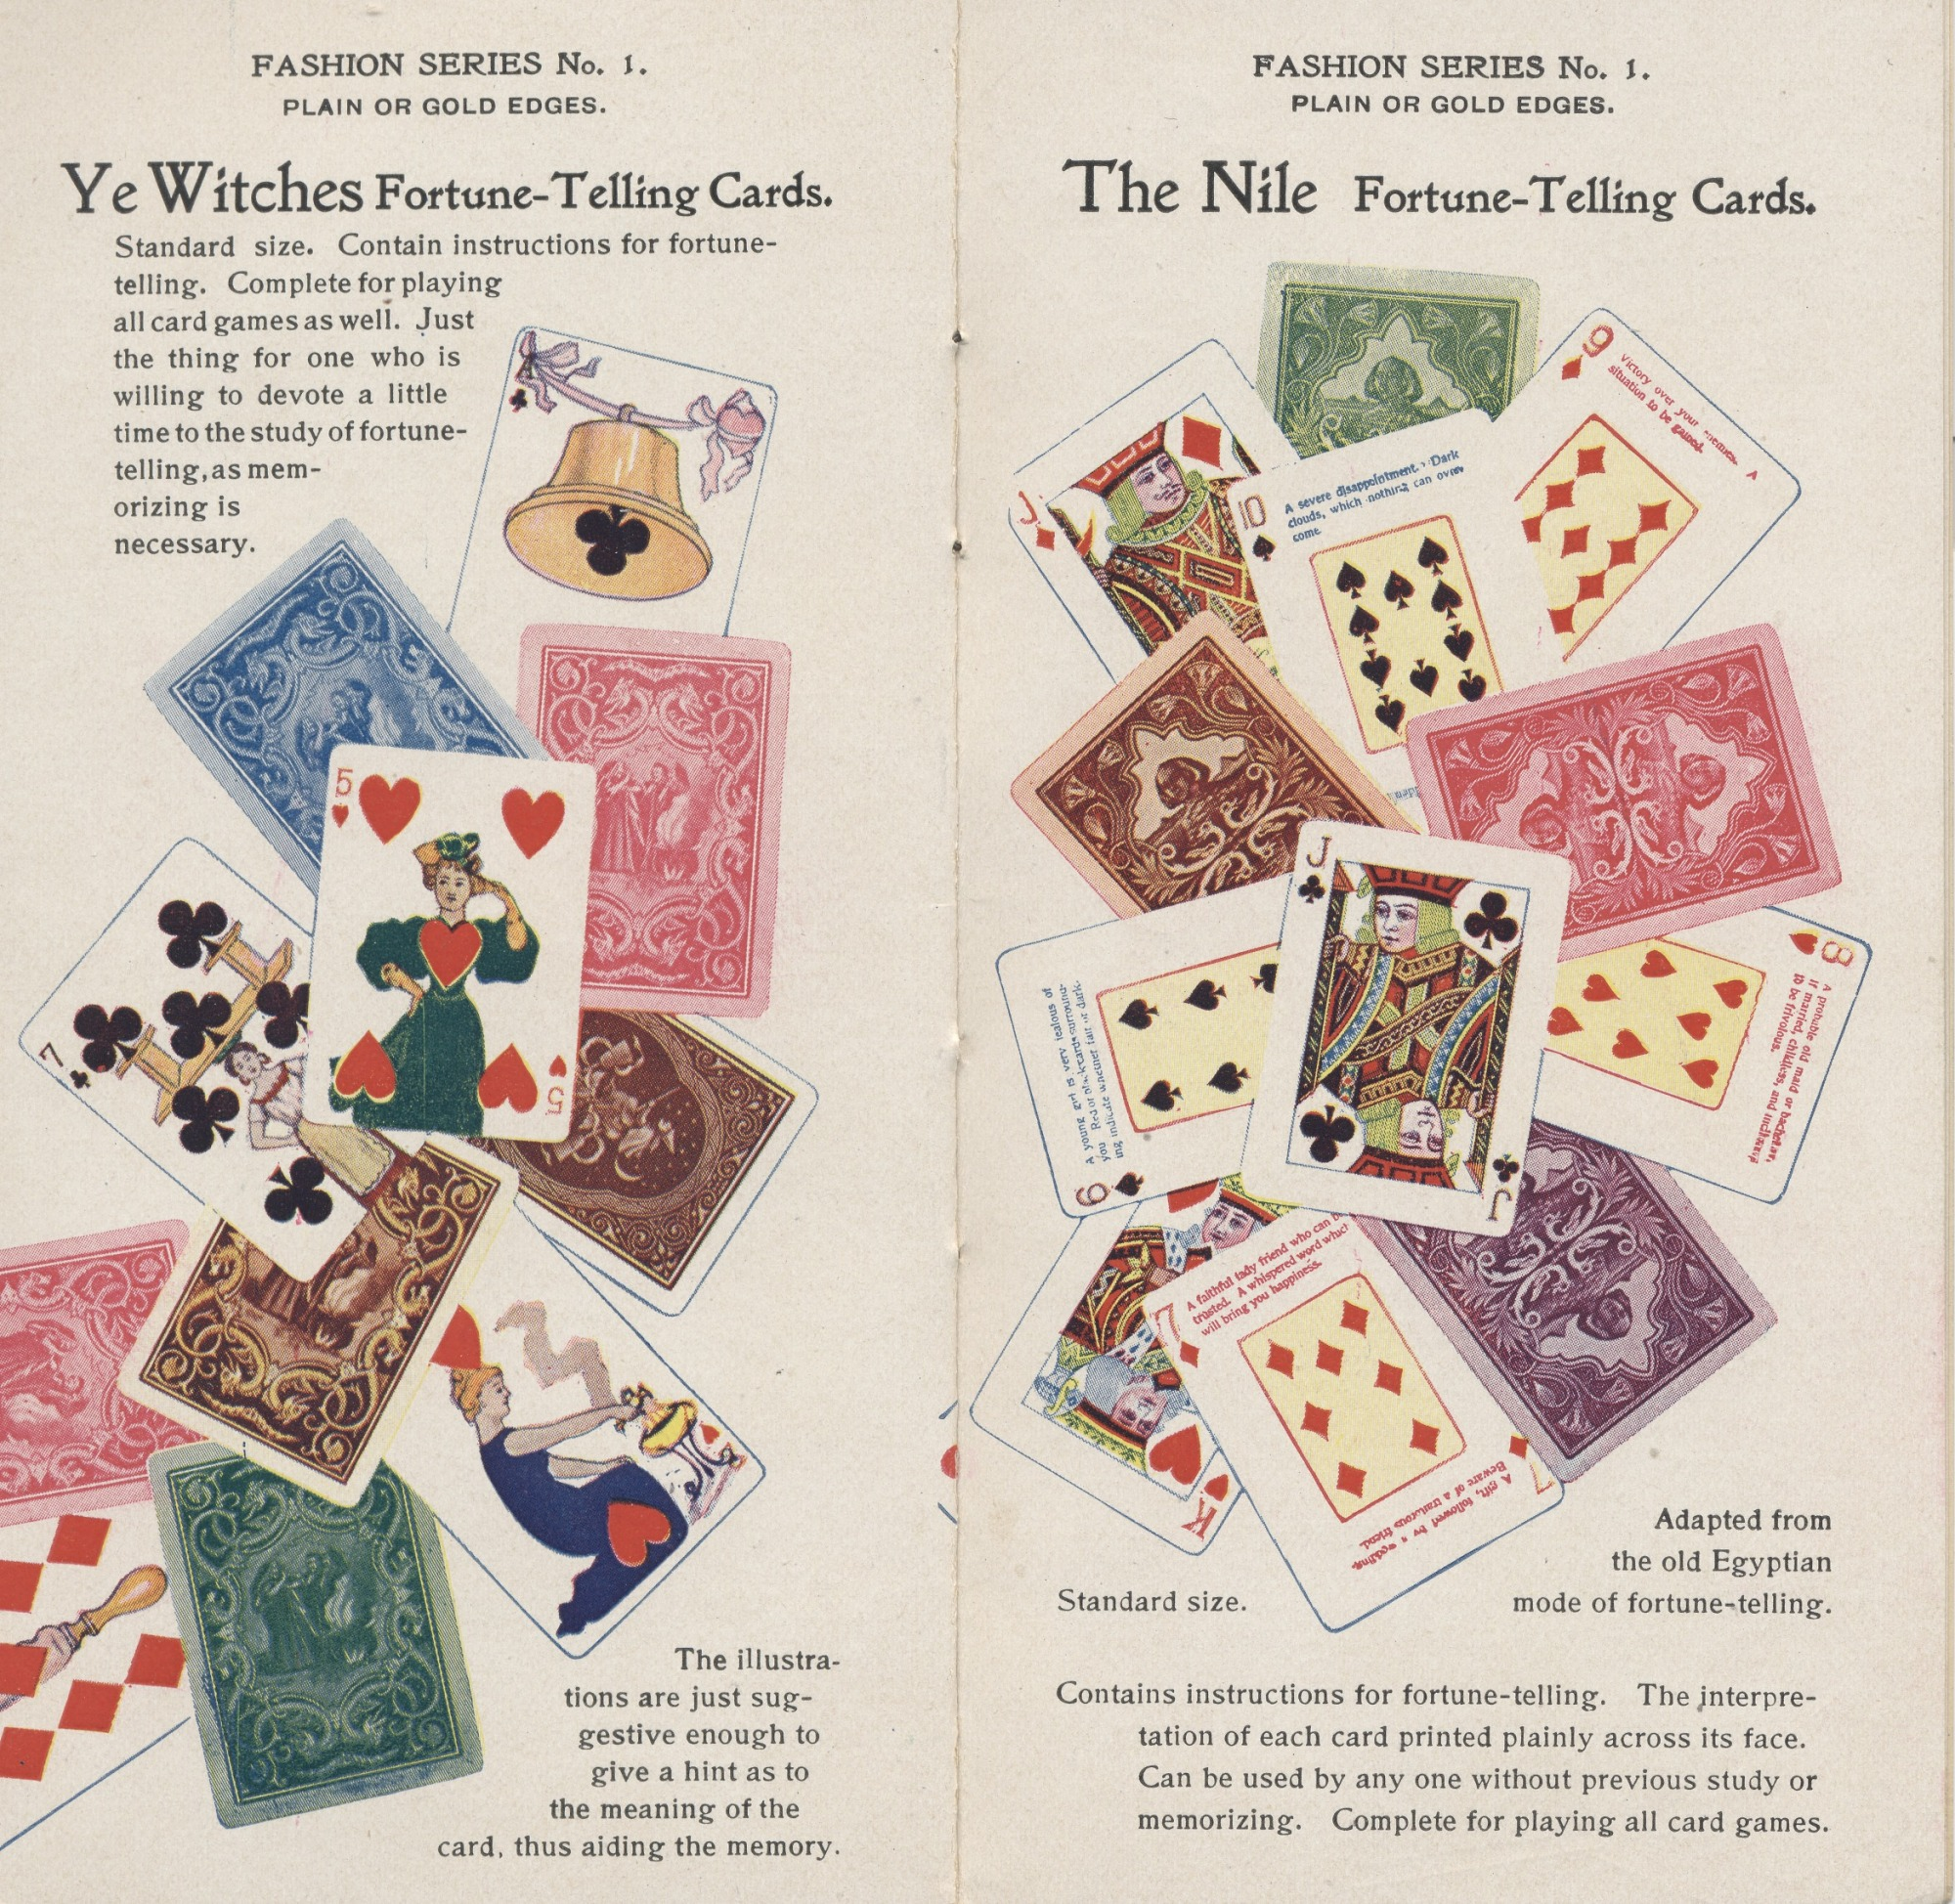 Ye Witches Fortune-Telling Cards